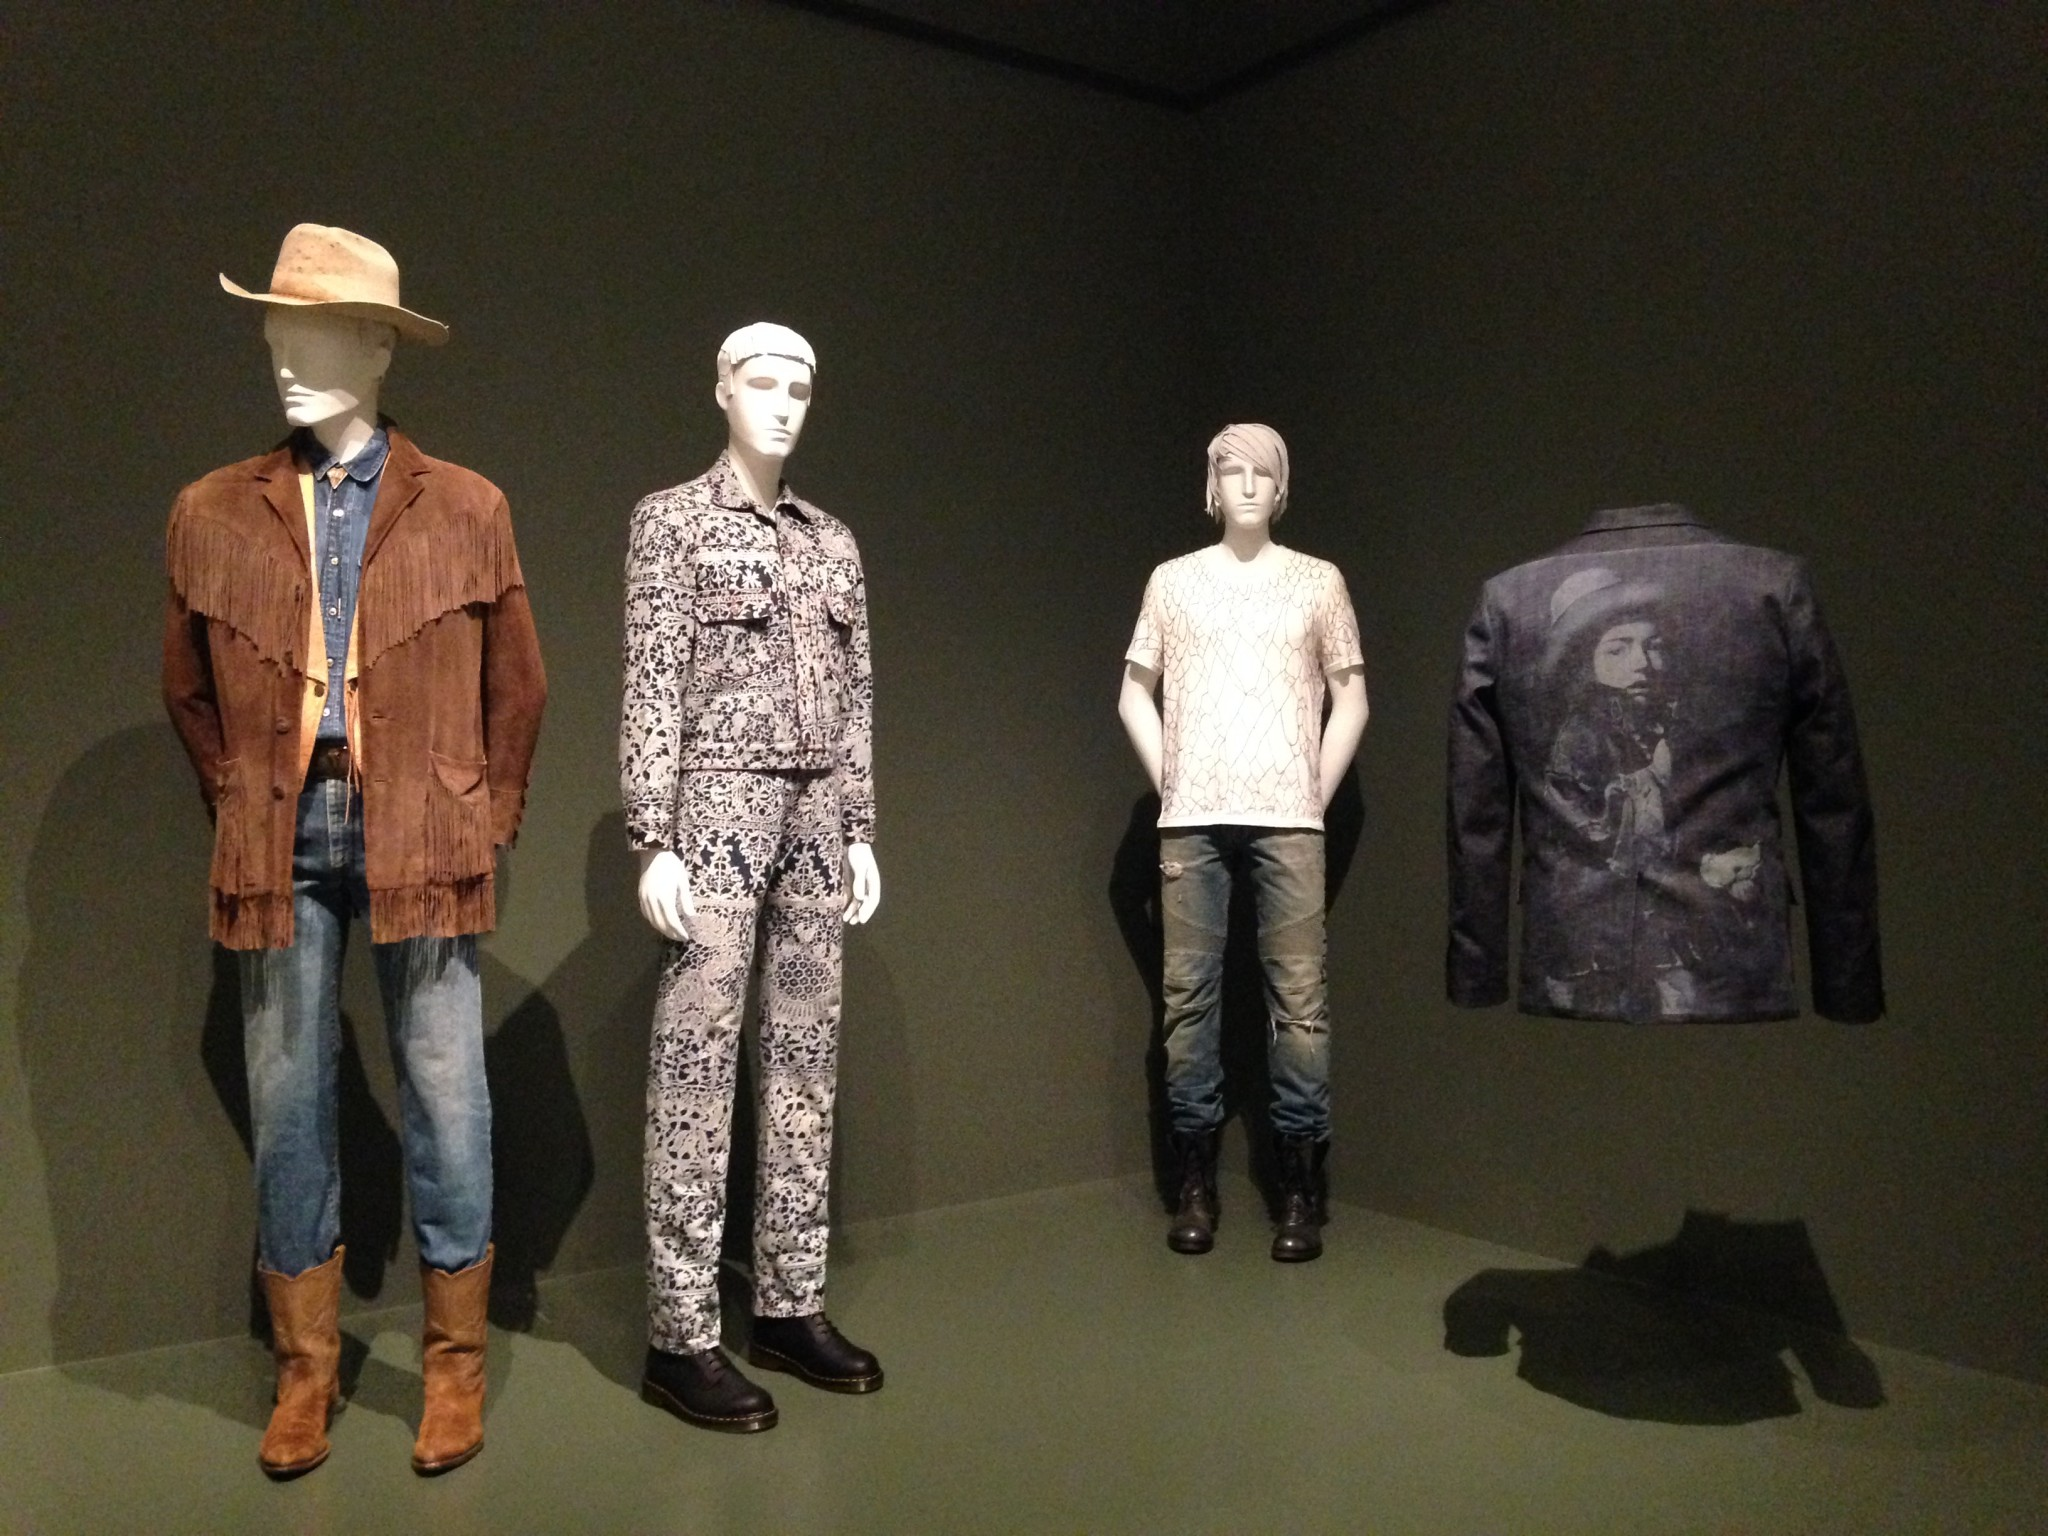 Reigning Men at LACMA, on view through August 21